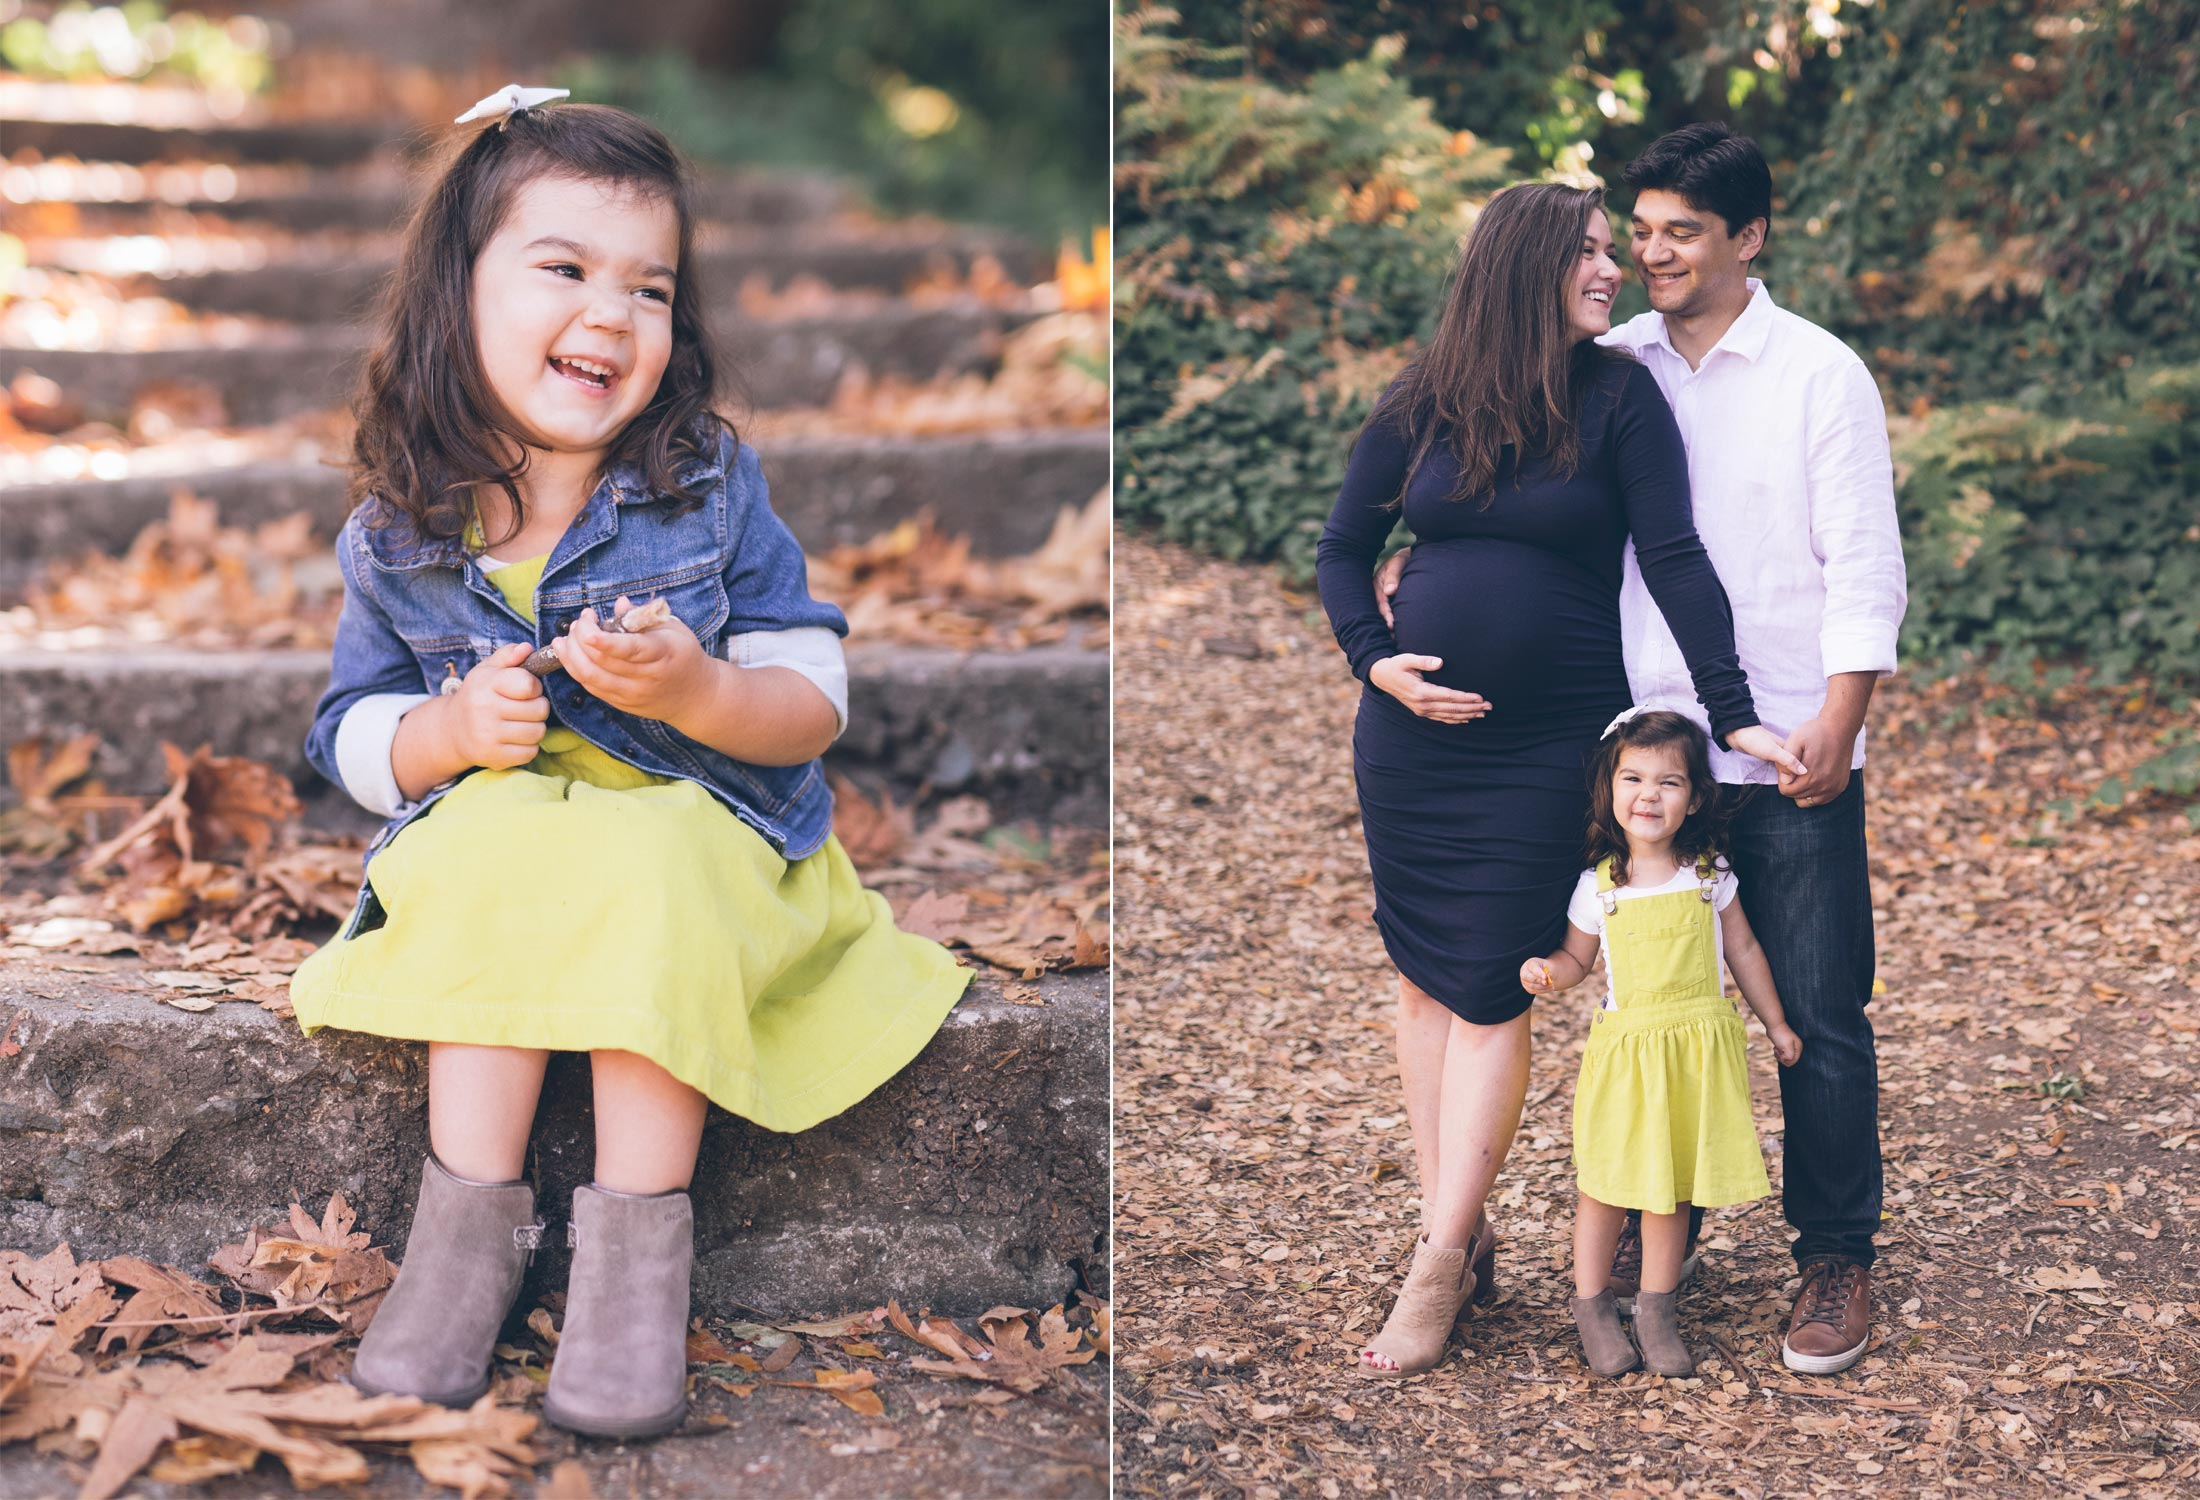 maternity-photo-session-and-family-at-the-park-in-berkeley.jpg